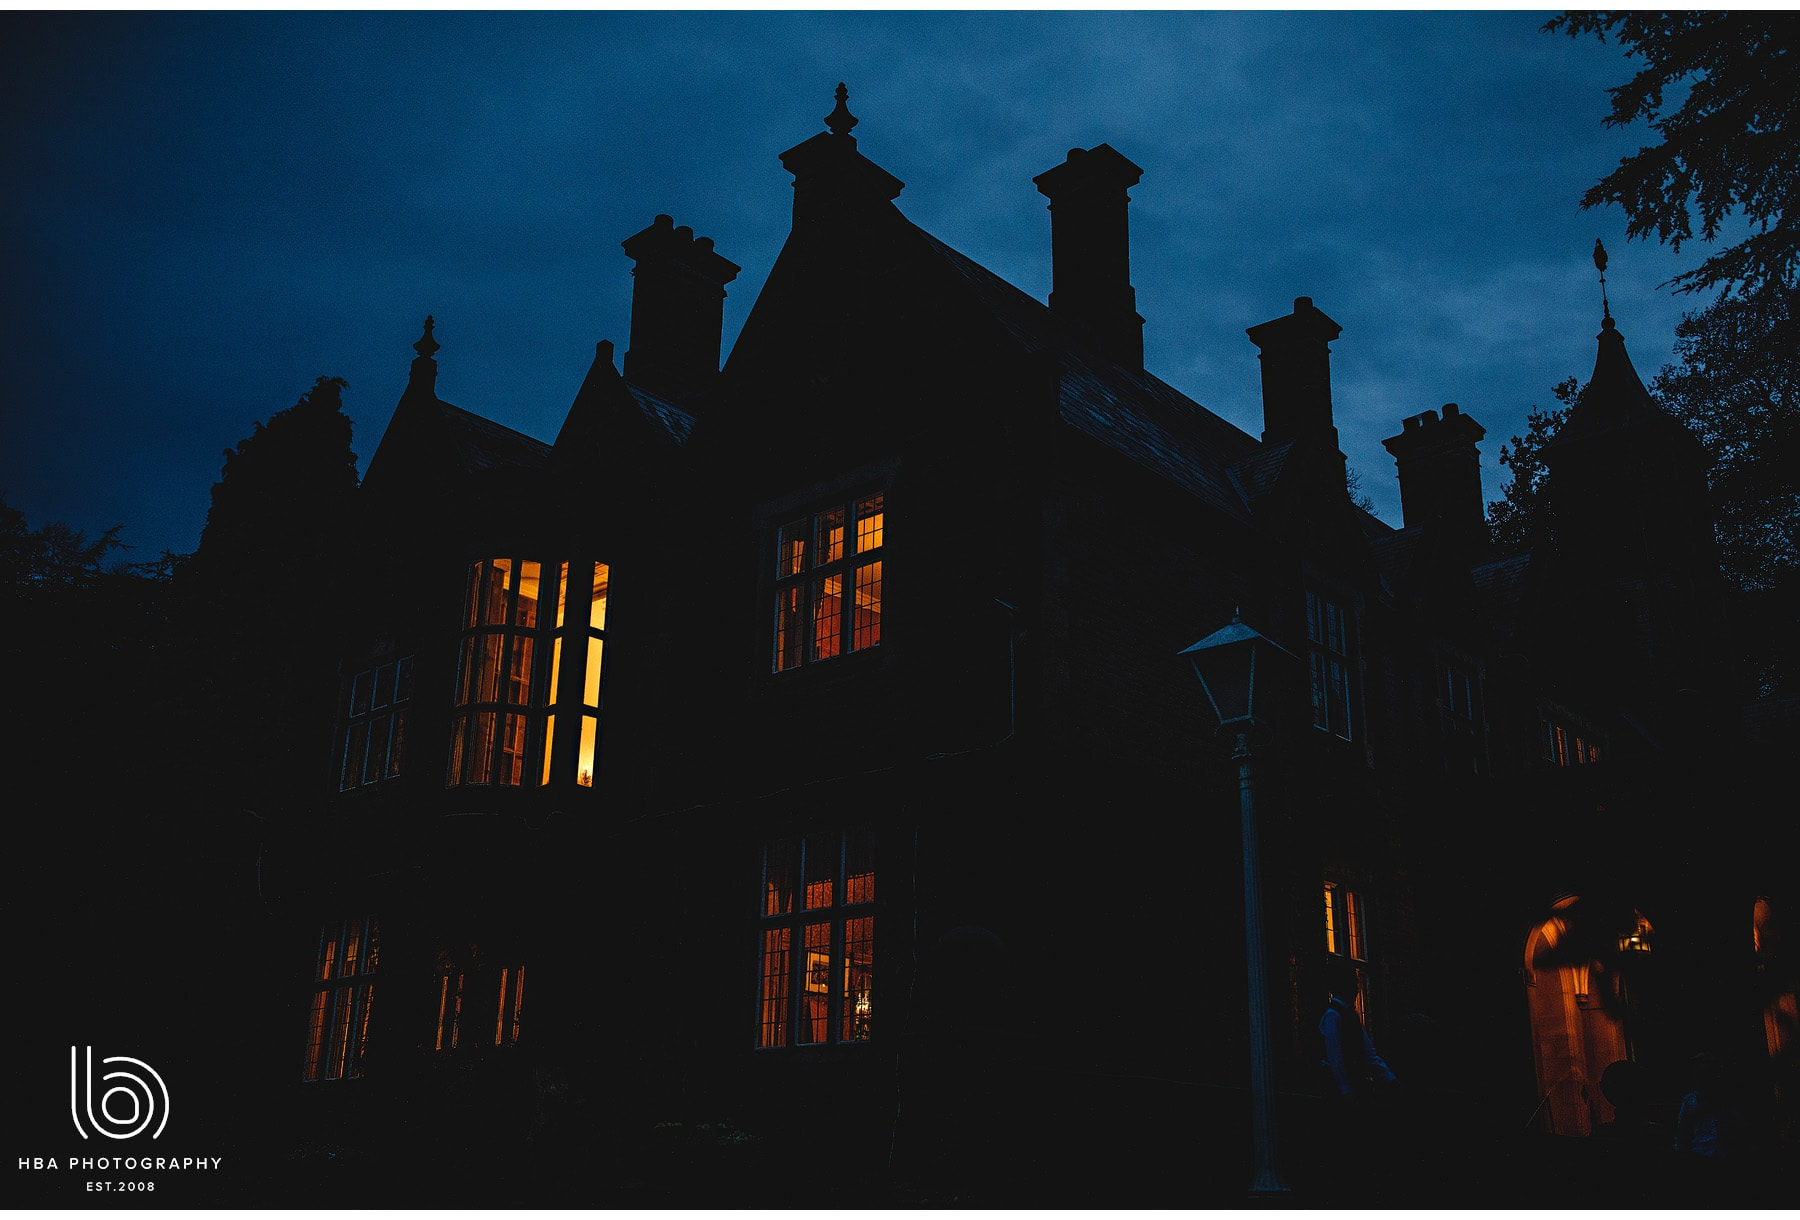 Callow Hall at night